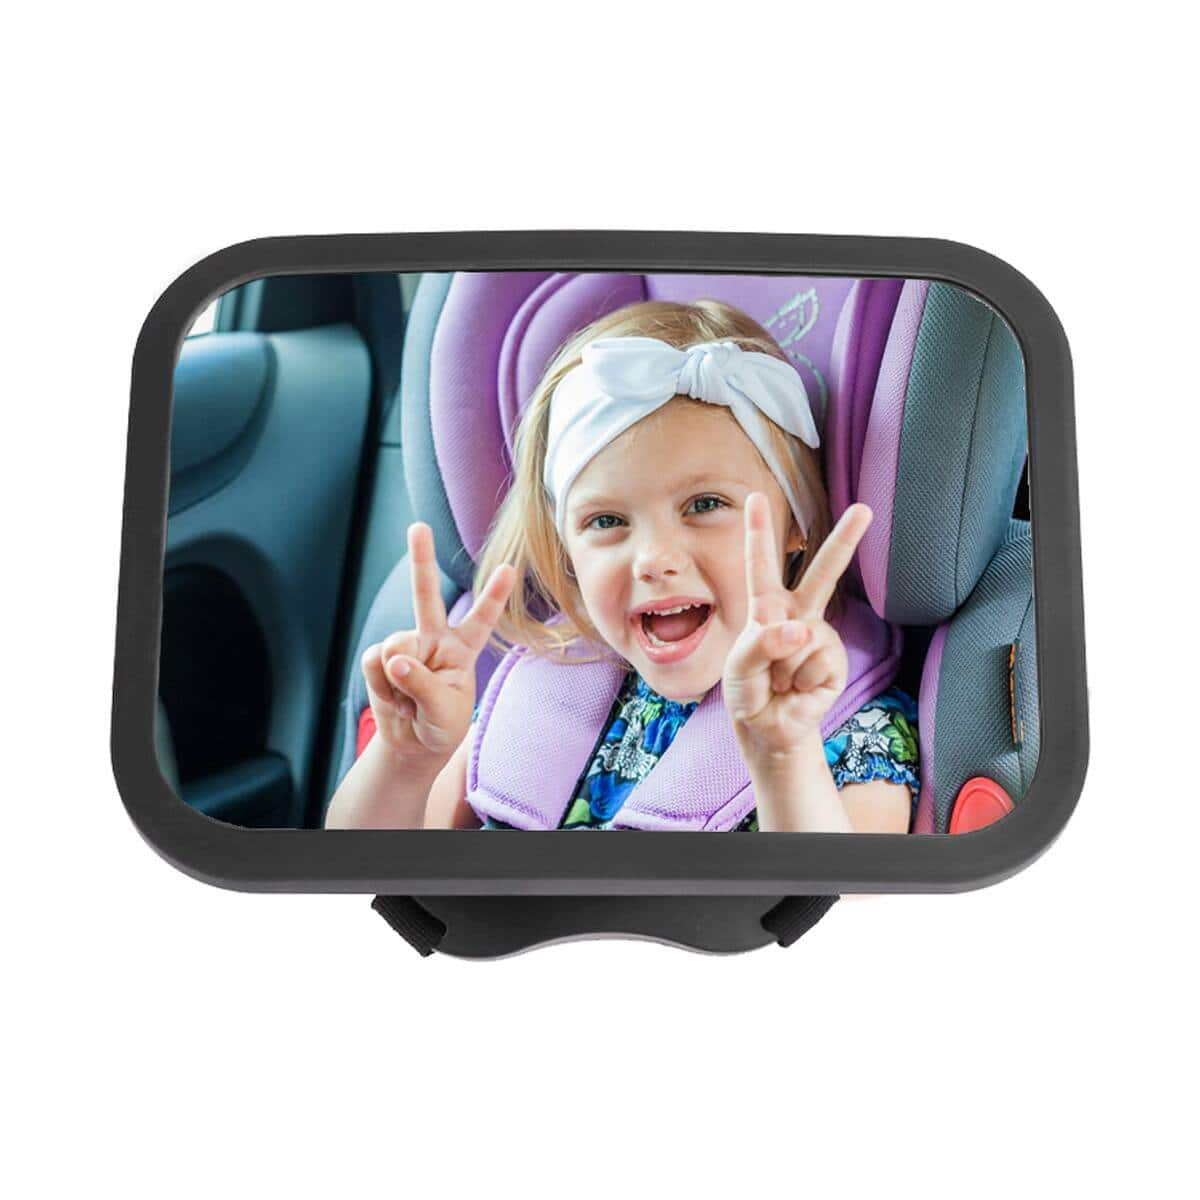 CANOPUS Baby Rear Facing Car Mirror (Wide Crystal Clear View, Shatterproof Glass and Fully Assembled) $9.59 + FSSS